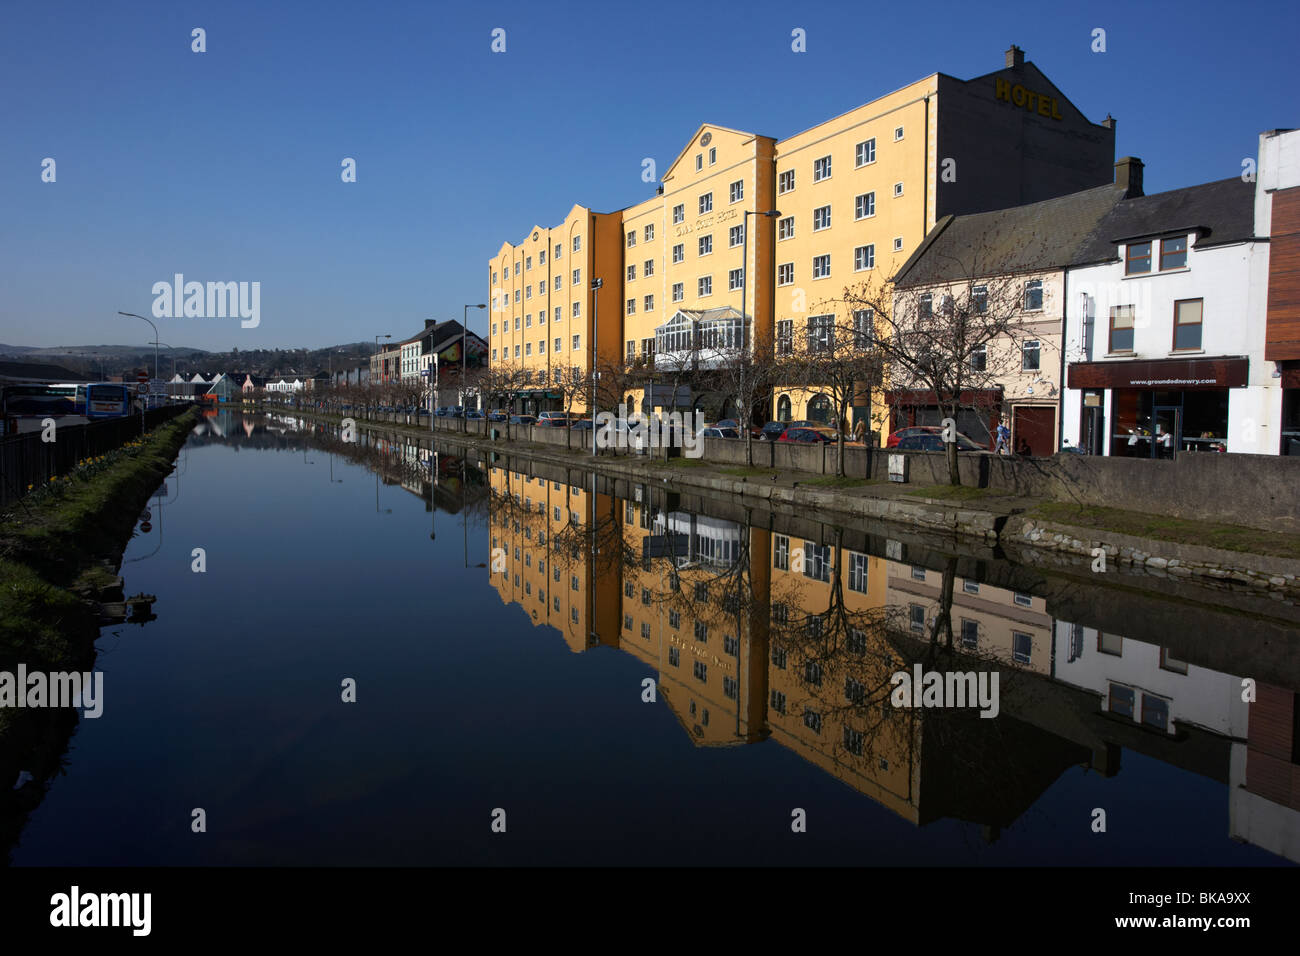 The Canal Court Hotel on the Newry canal County down northern ireland uk - Stock Image